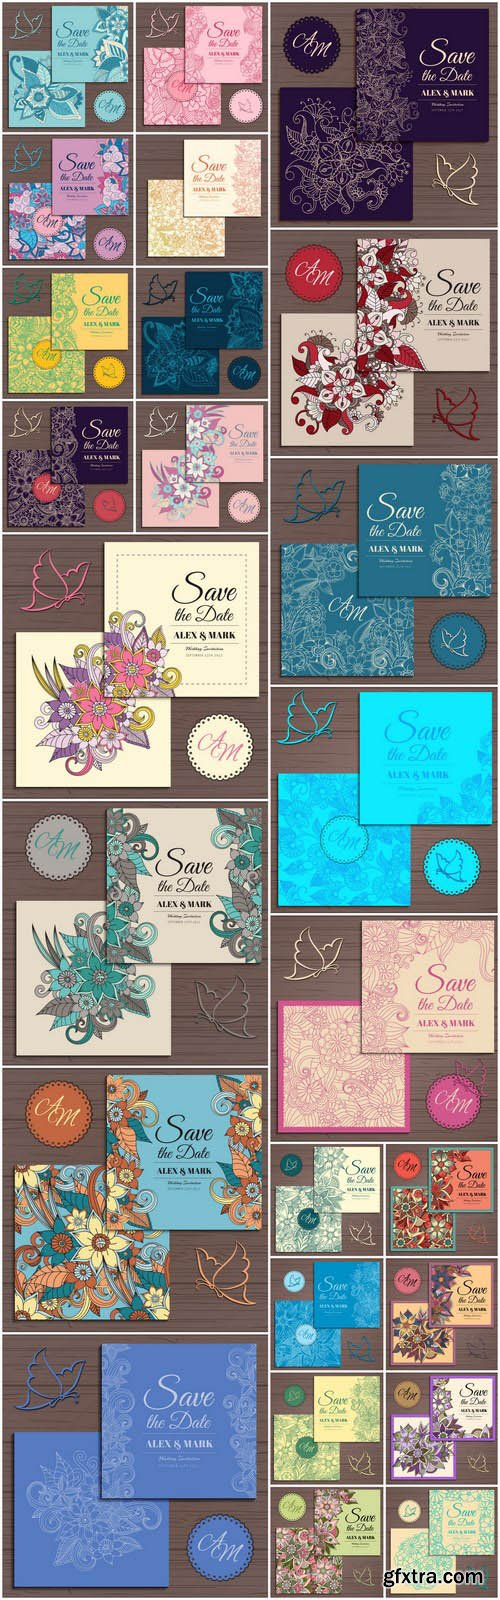 Floral Wedding Card Template #2 - 25 Vector